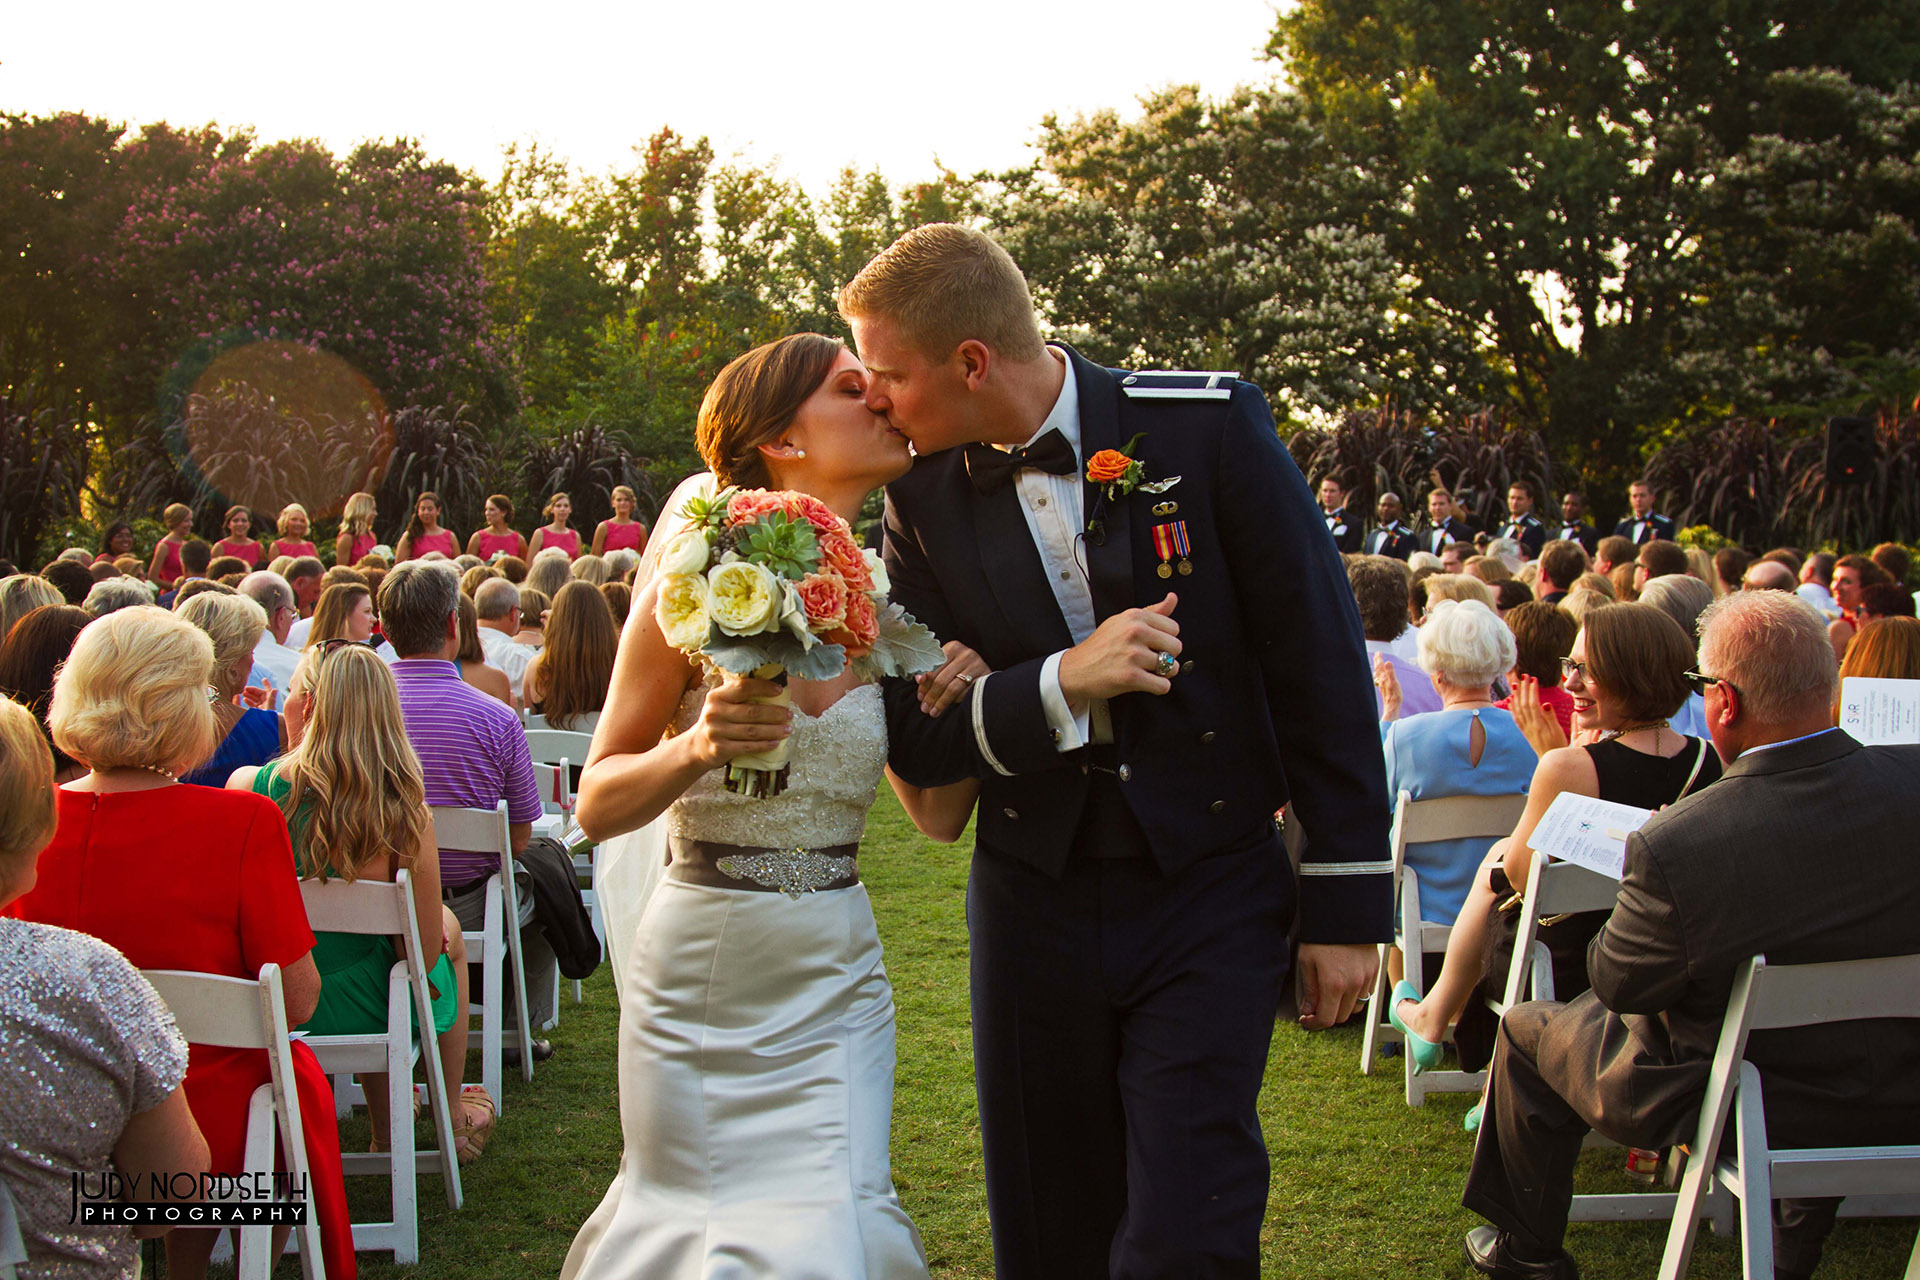 Judy Nordseth Photography - Weddings